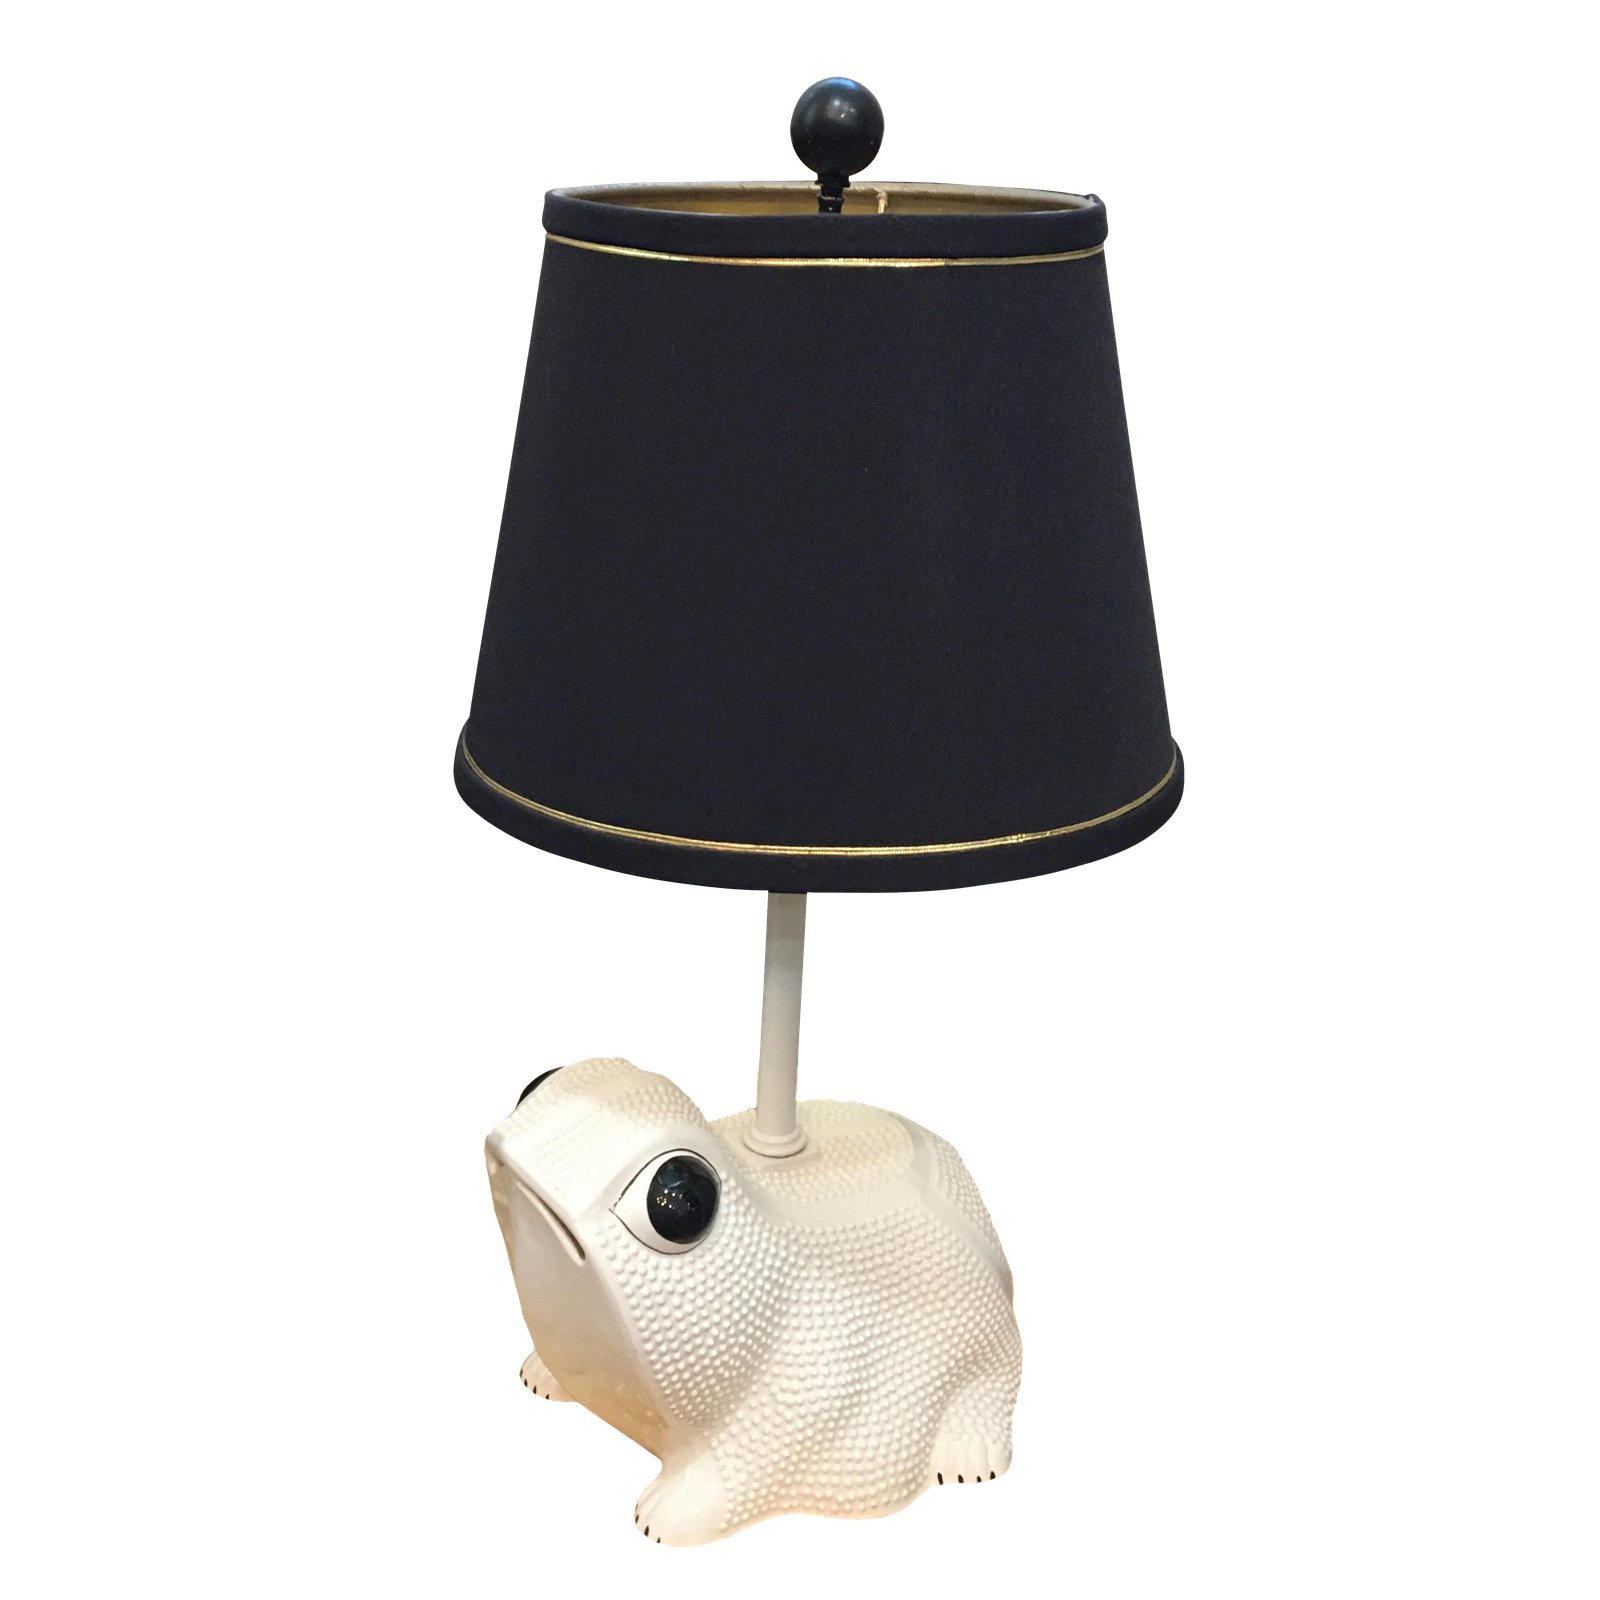 circa italian frog table lamp chairish accent lighting seattle small battery powered lamps black round pedestal warwick furniture pub garden marble top side bronze metal patio and